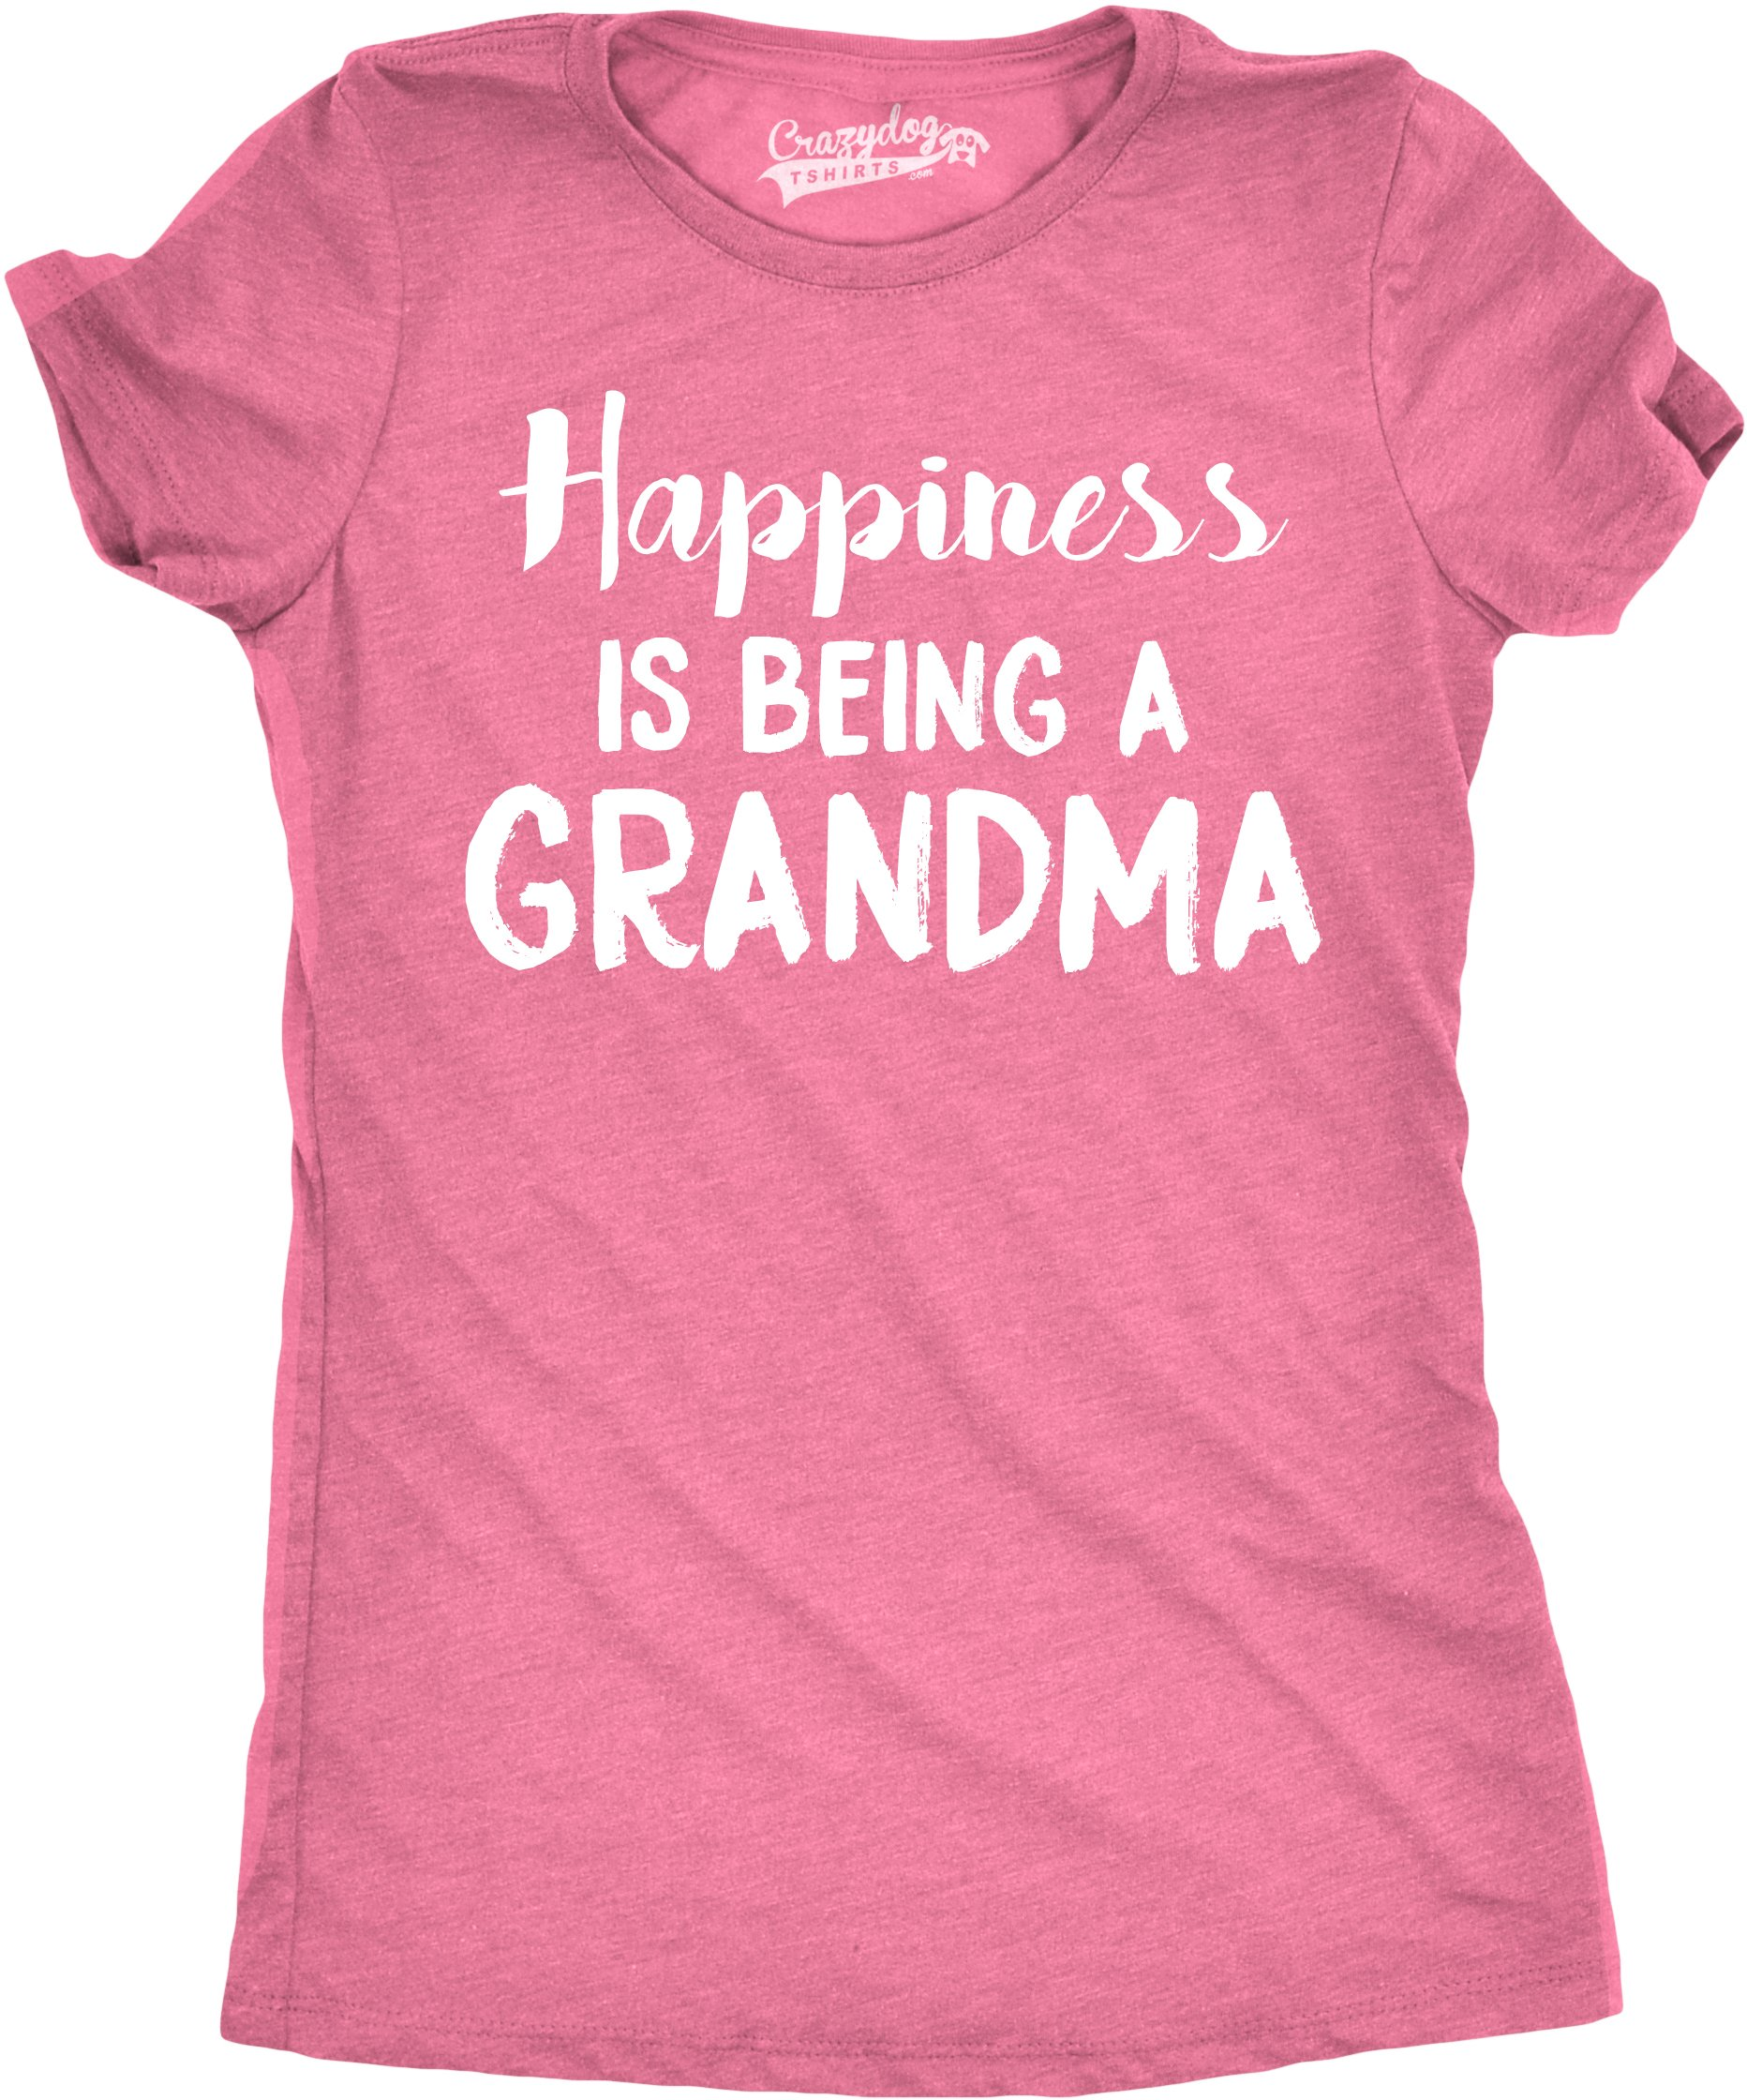 Happiness Is Being A Grandma Tshirt Funny Grandmother Tee For